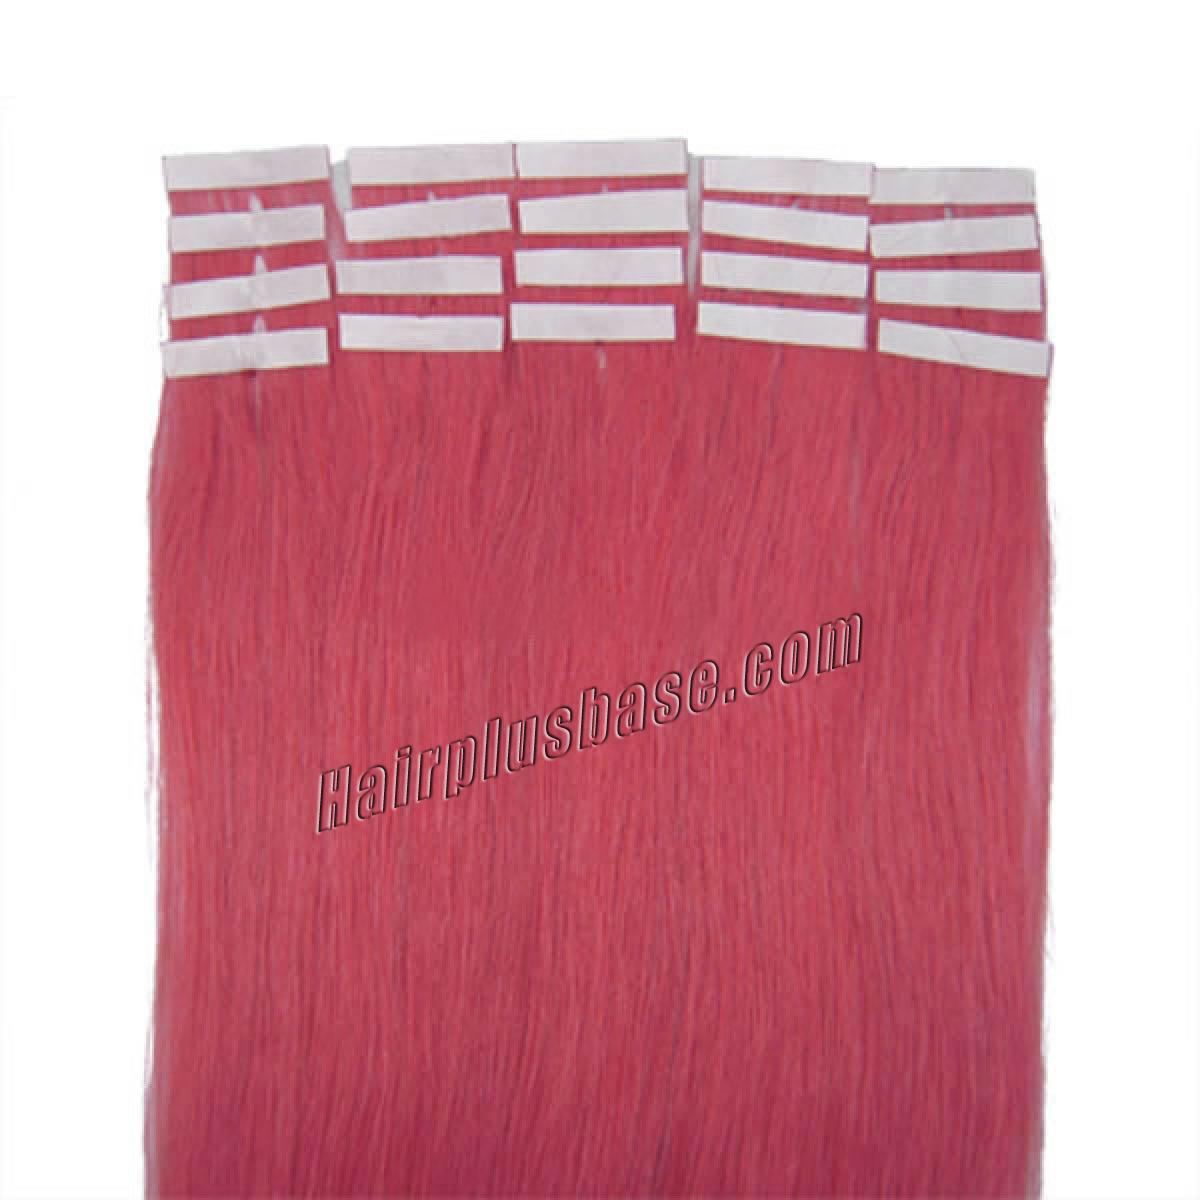 16 Inch Pink Tape In Human Hair Extensions 20pcs no 2